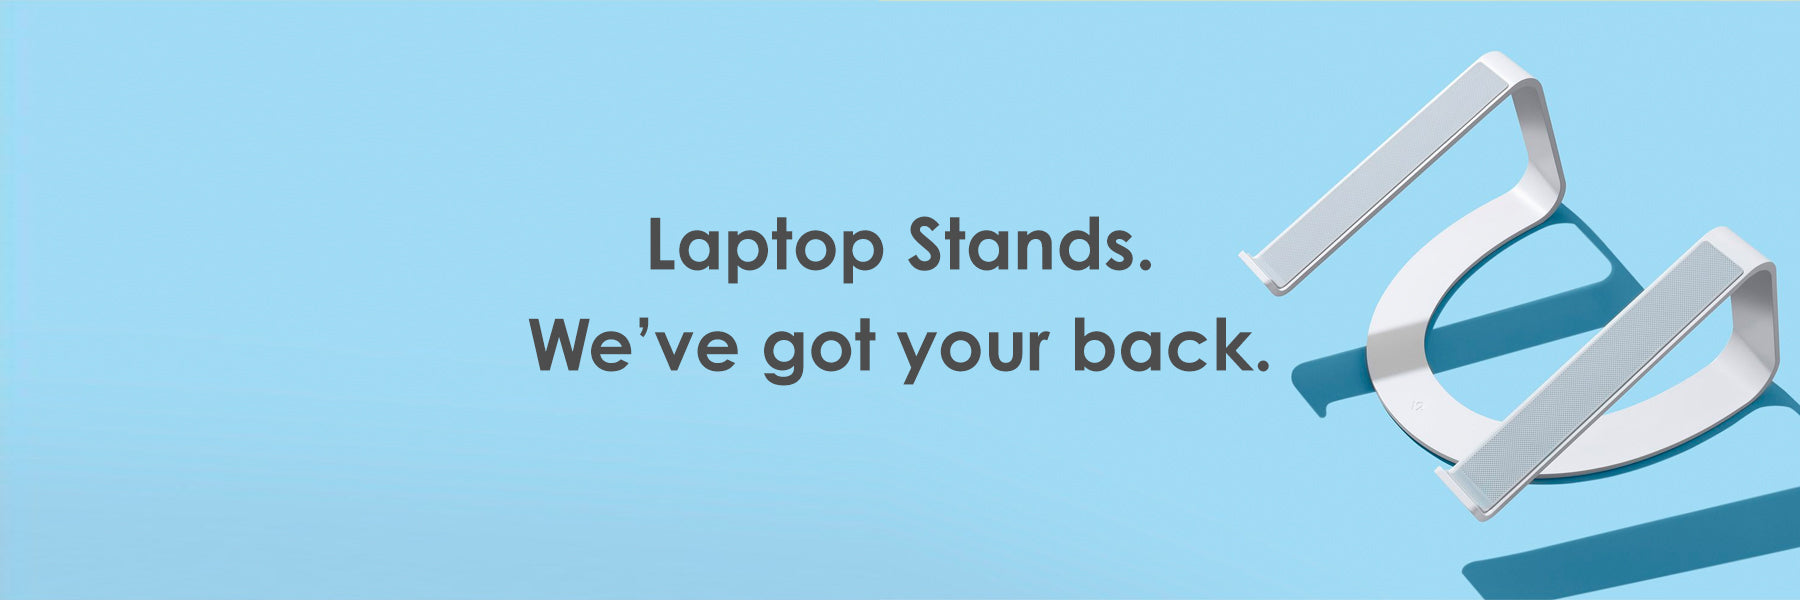 Laptop Stands. We've got your back.